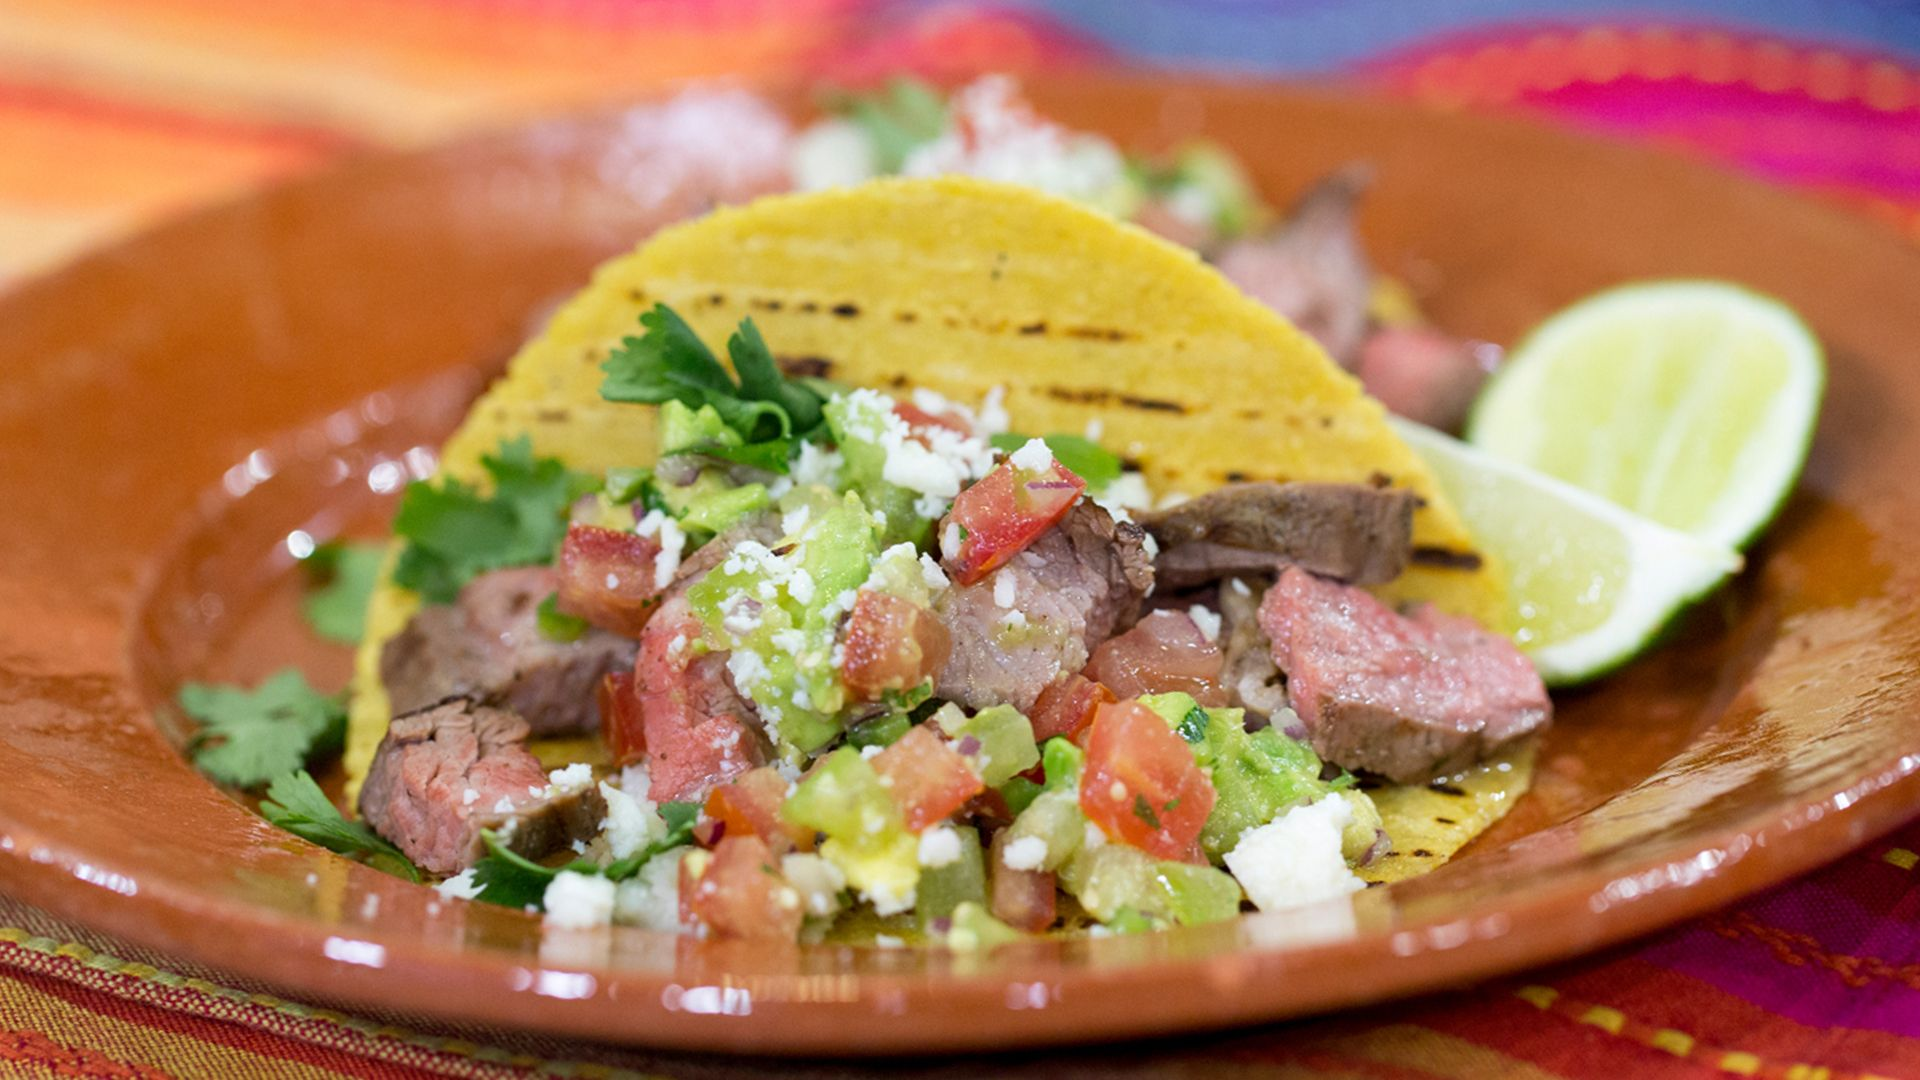 Taco night! Make Siri and Carson's easy steak tacos and margaritas